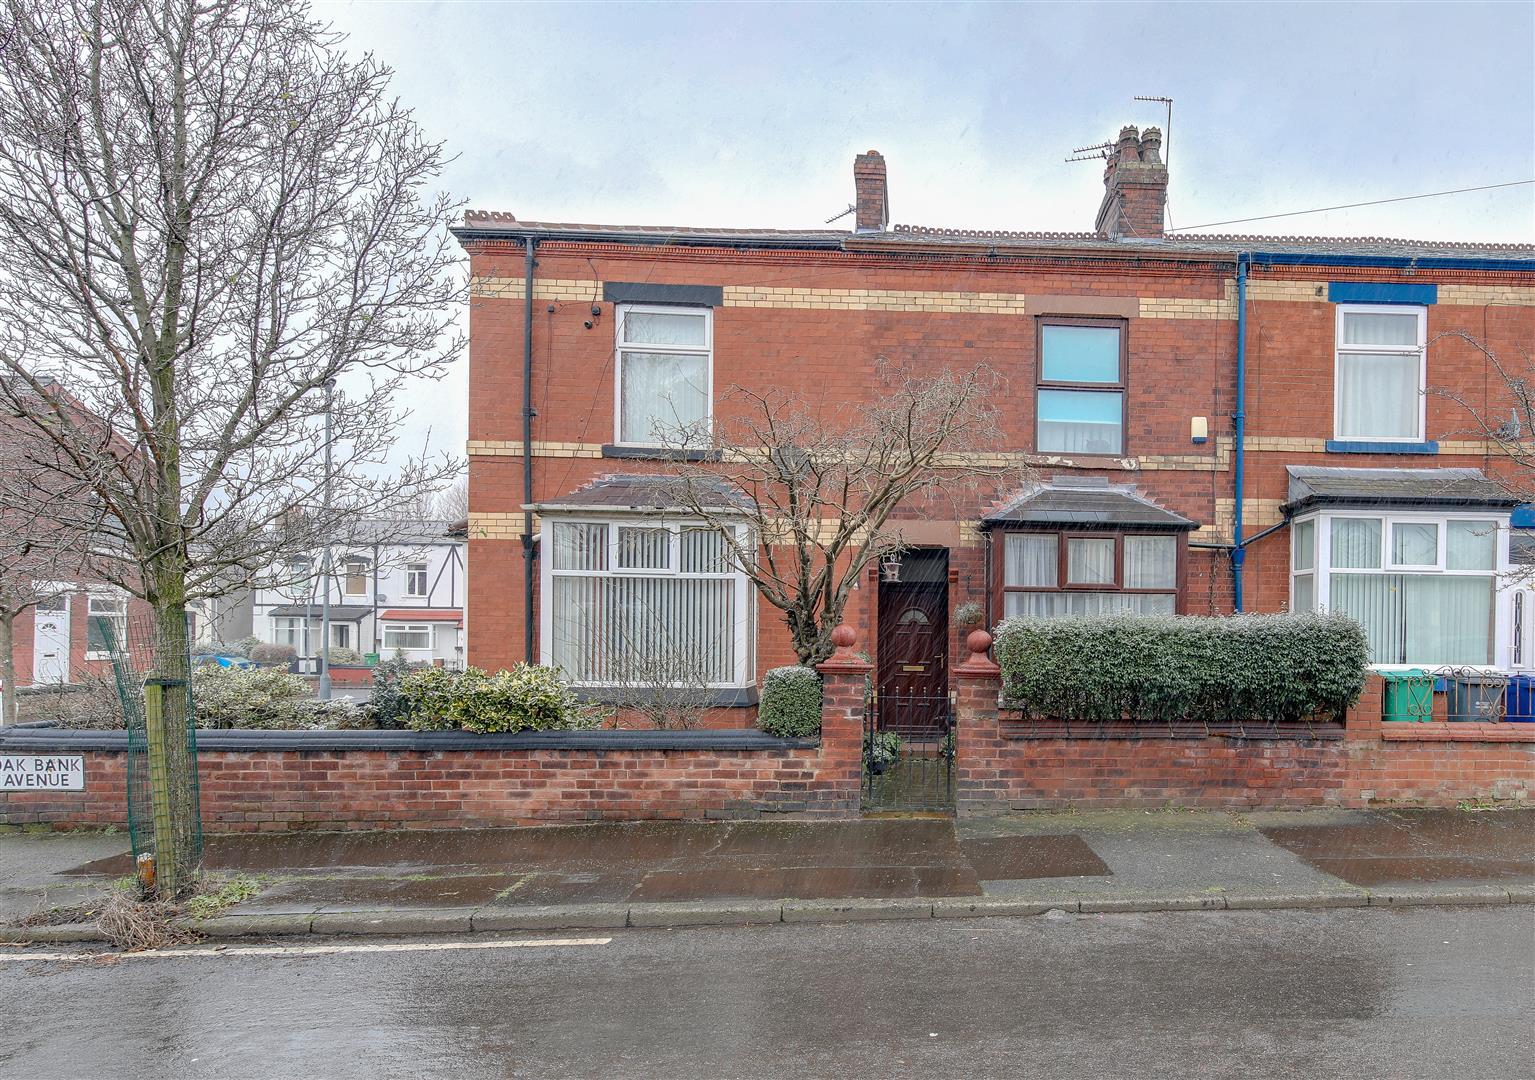 3 Bedrooms Terraced House for sale in Oakbank Avenue, Moston, Manchester